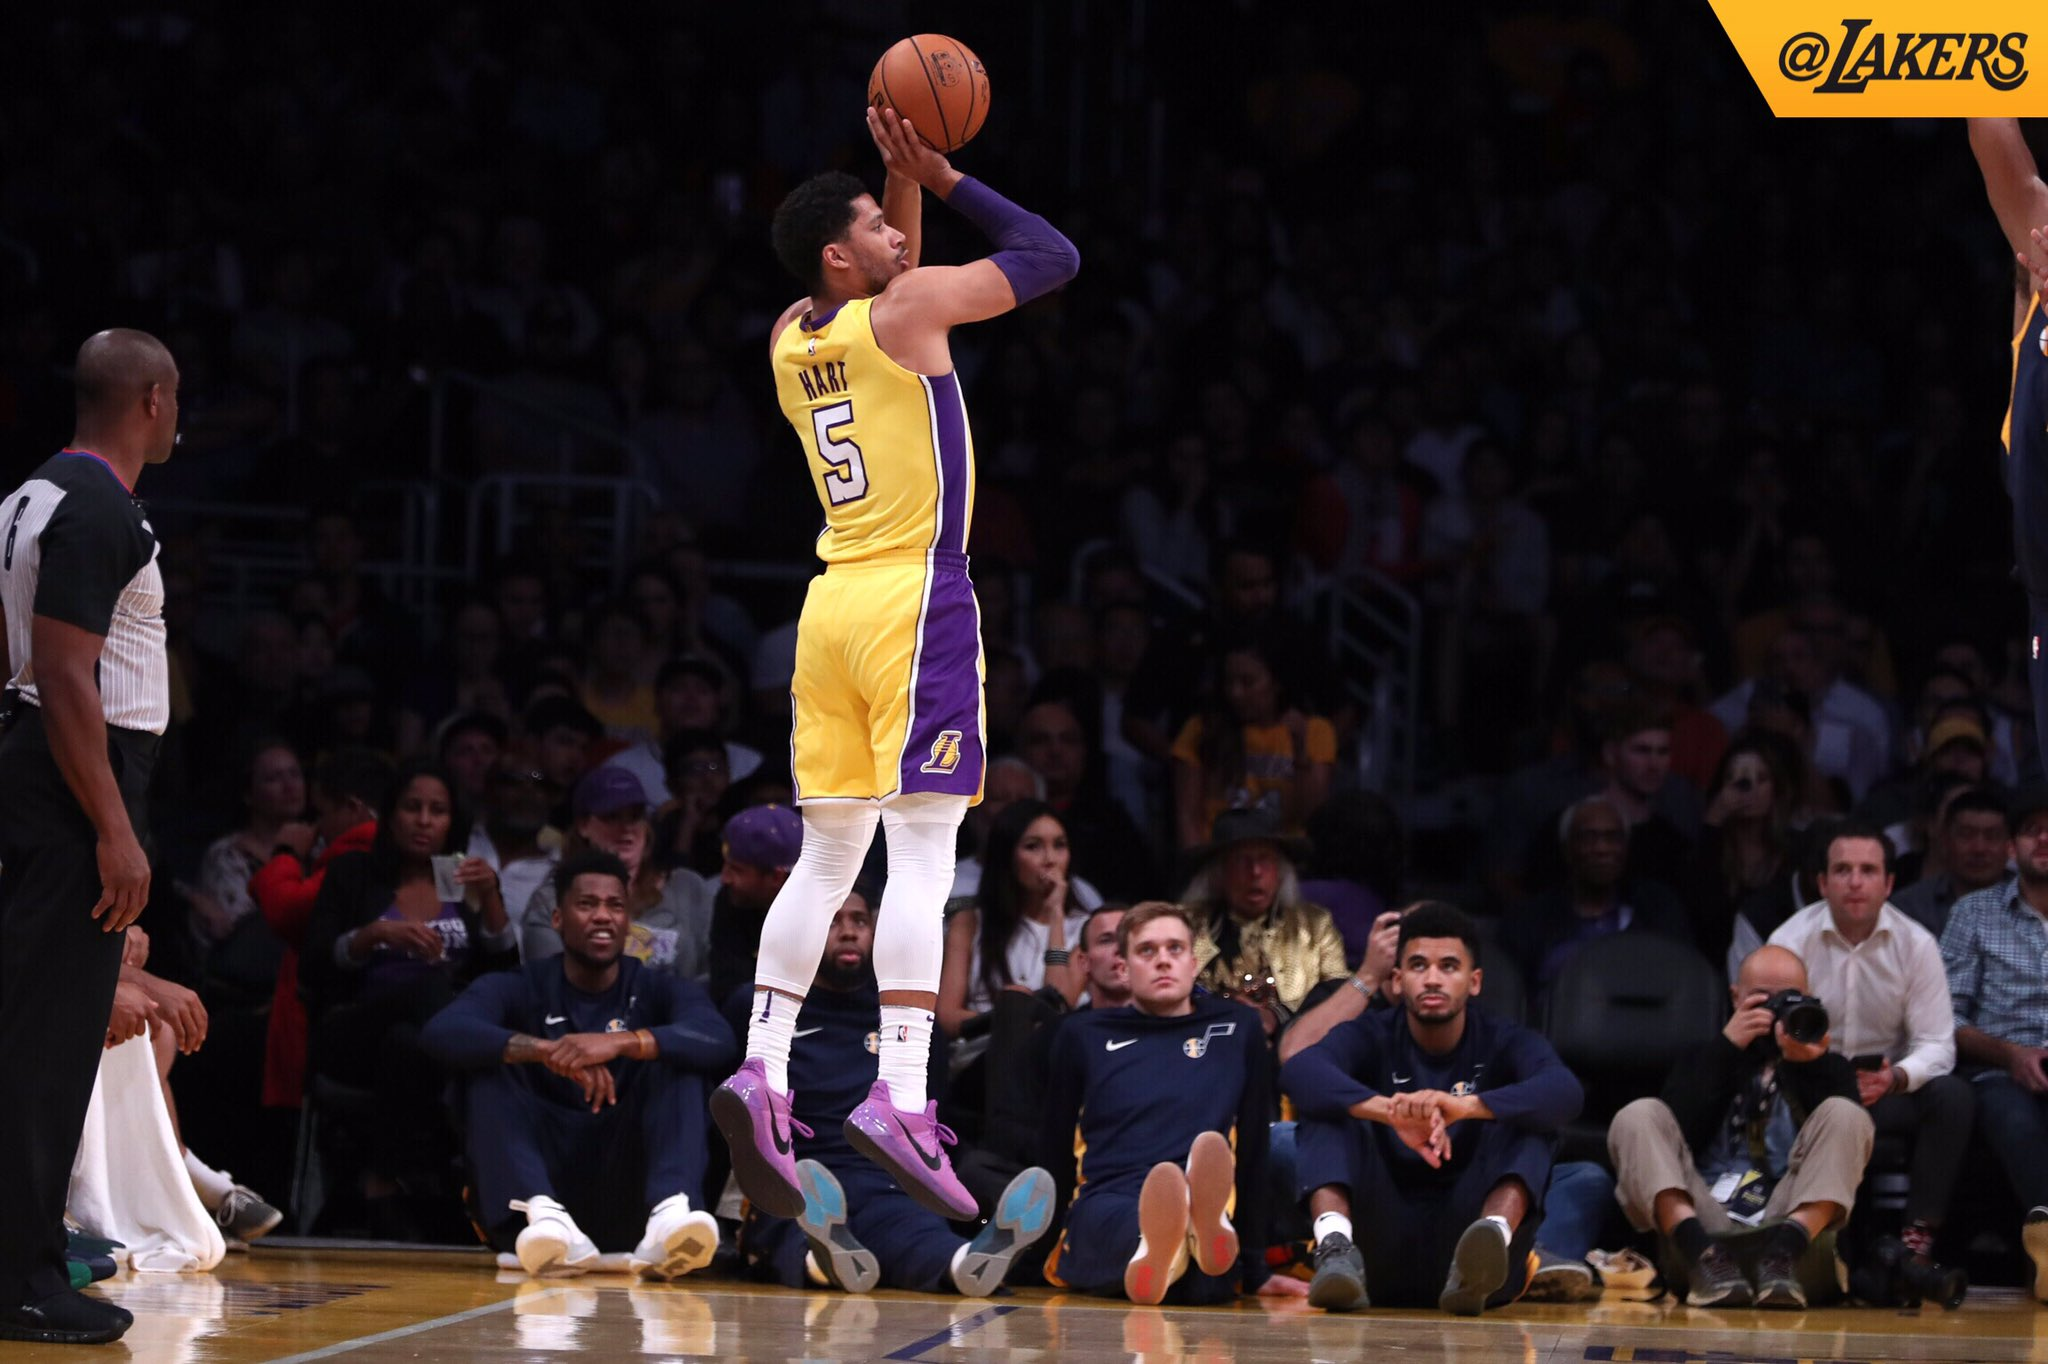 �� @joshhart knocking it down from the corner #LakeShow https://t.co/MDDR87hPbr